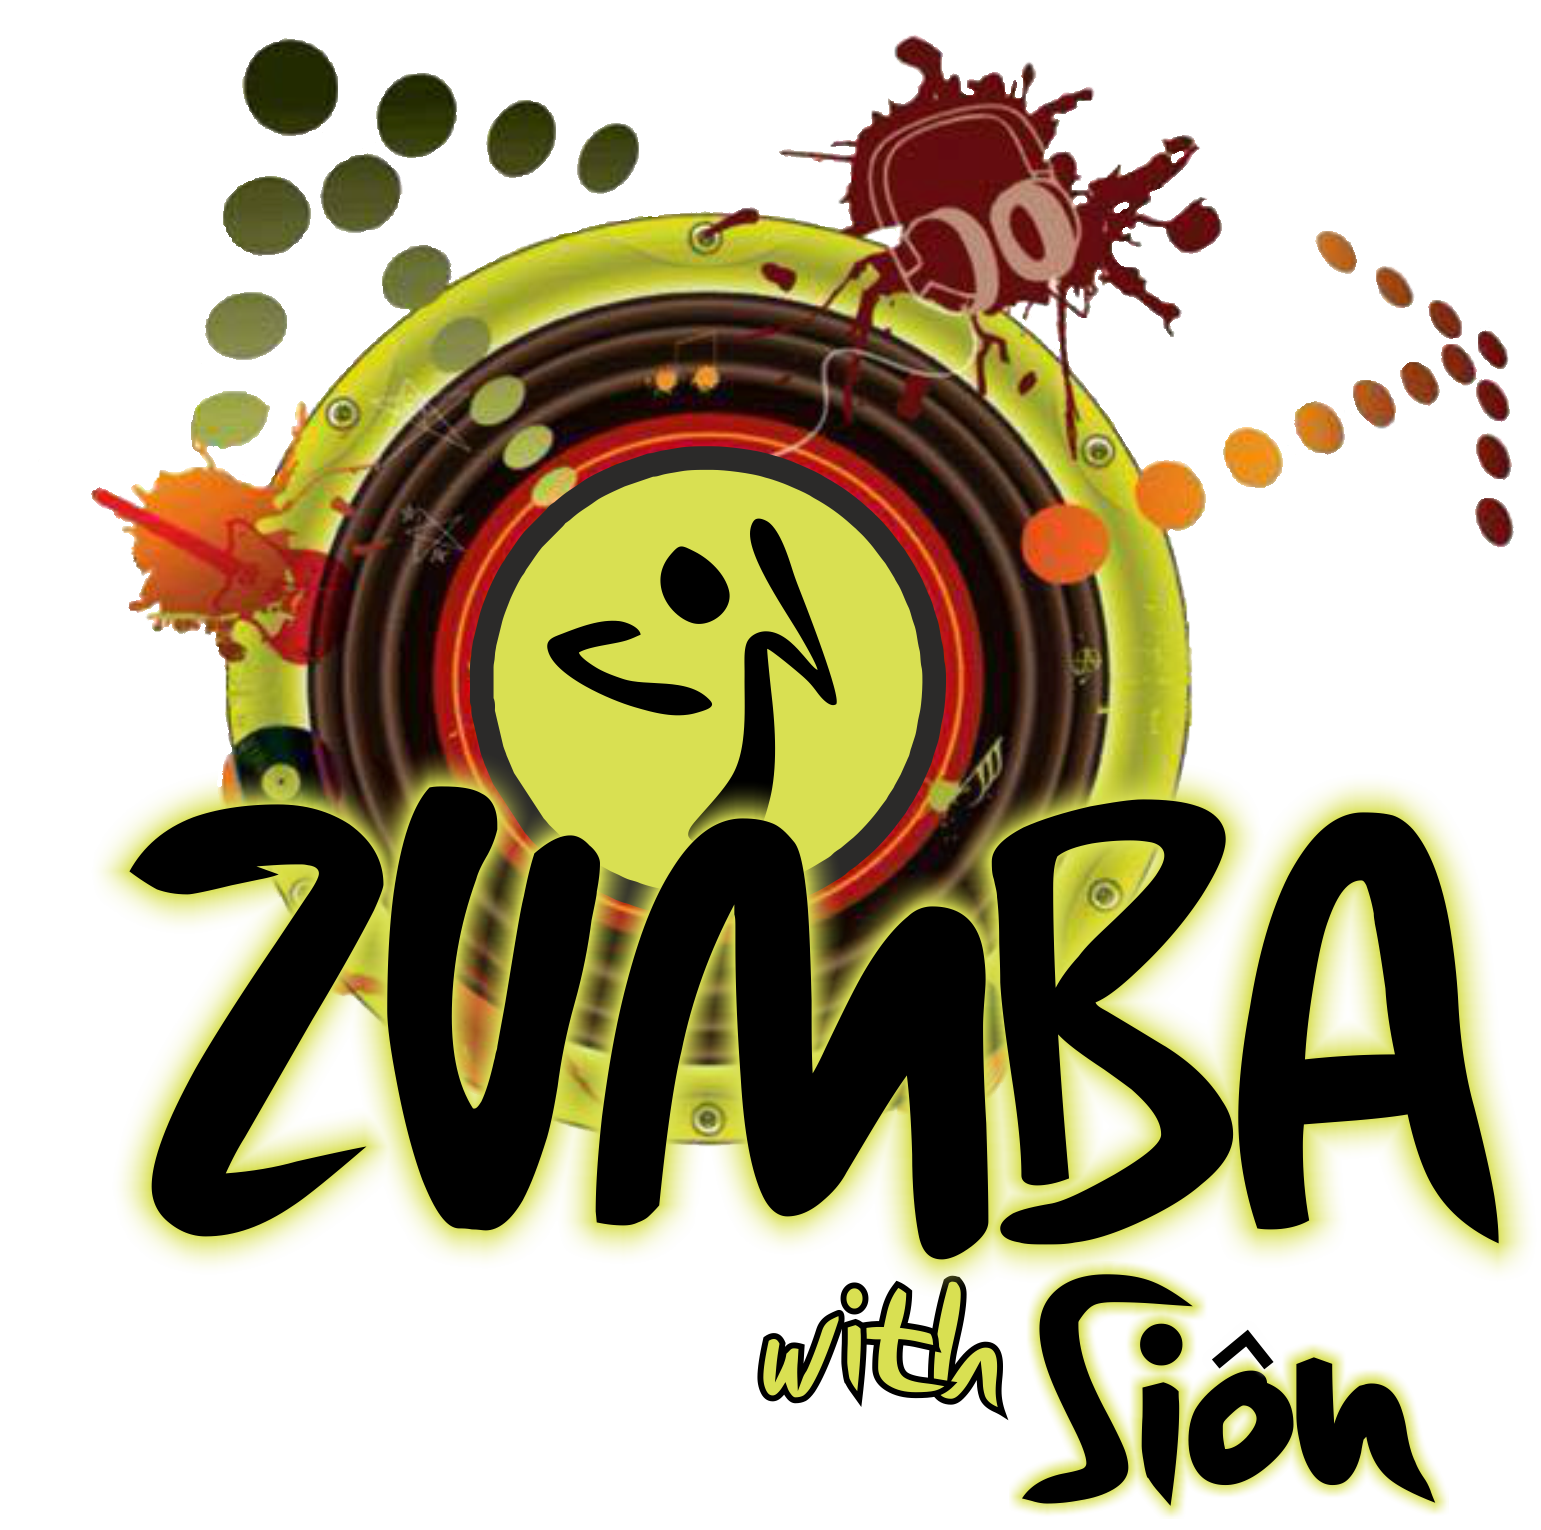 Zumba gym personal trainer. Fitness clipart fitness club